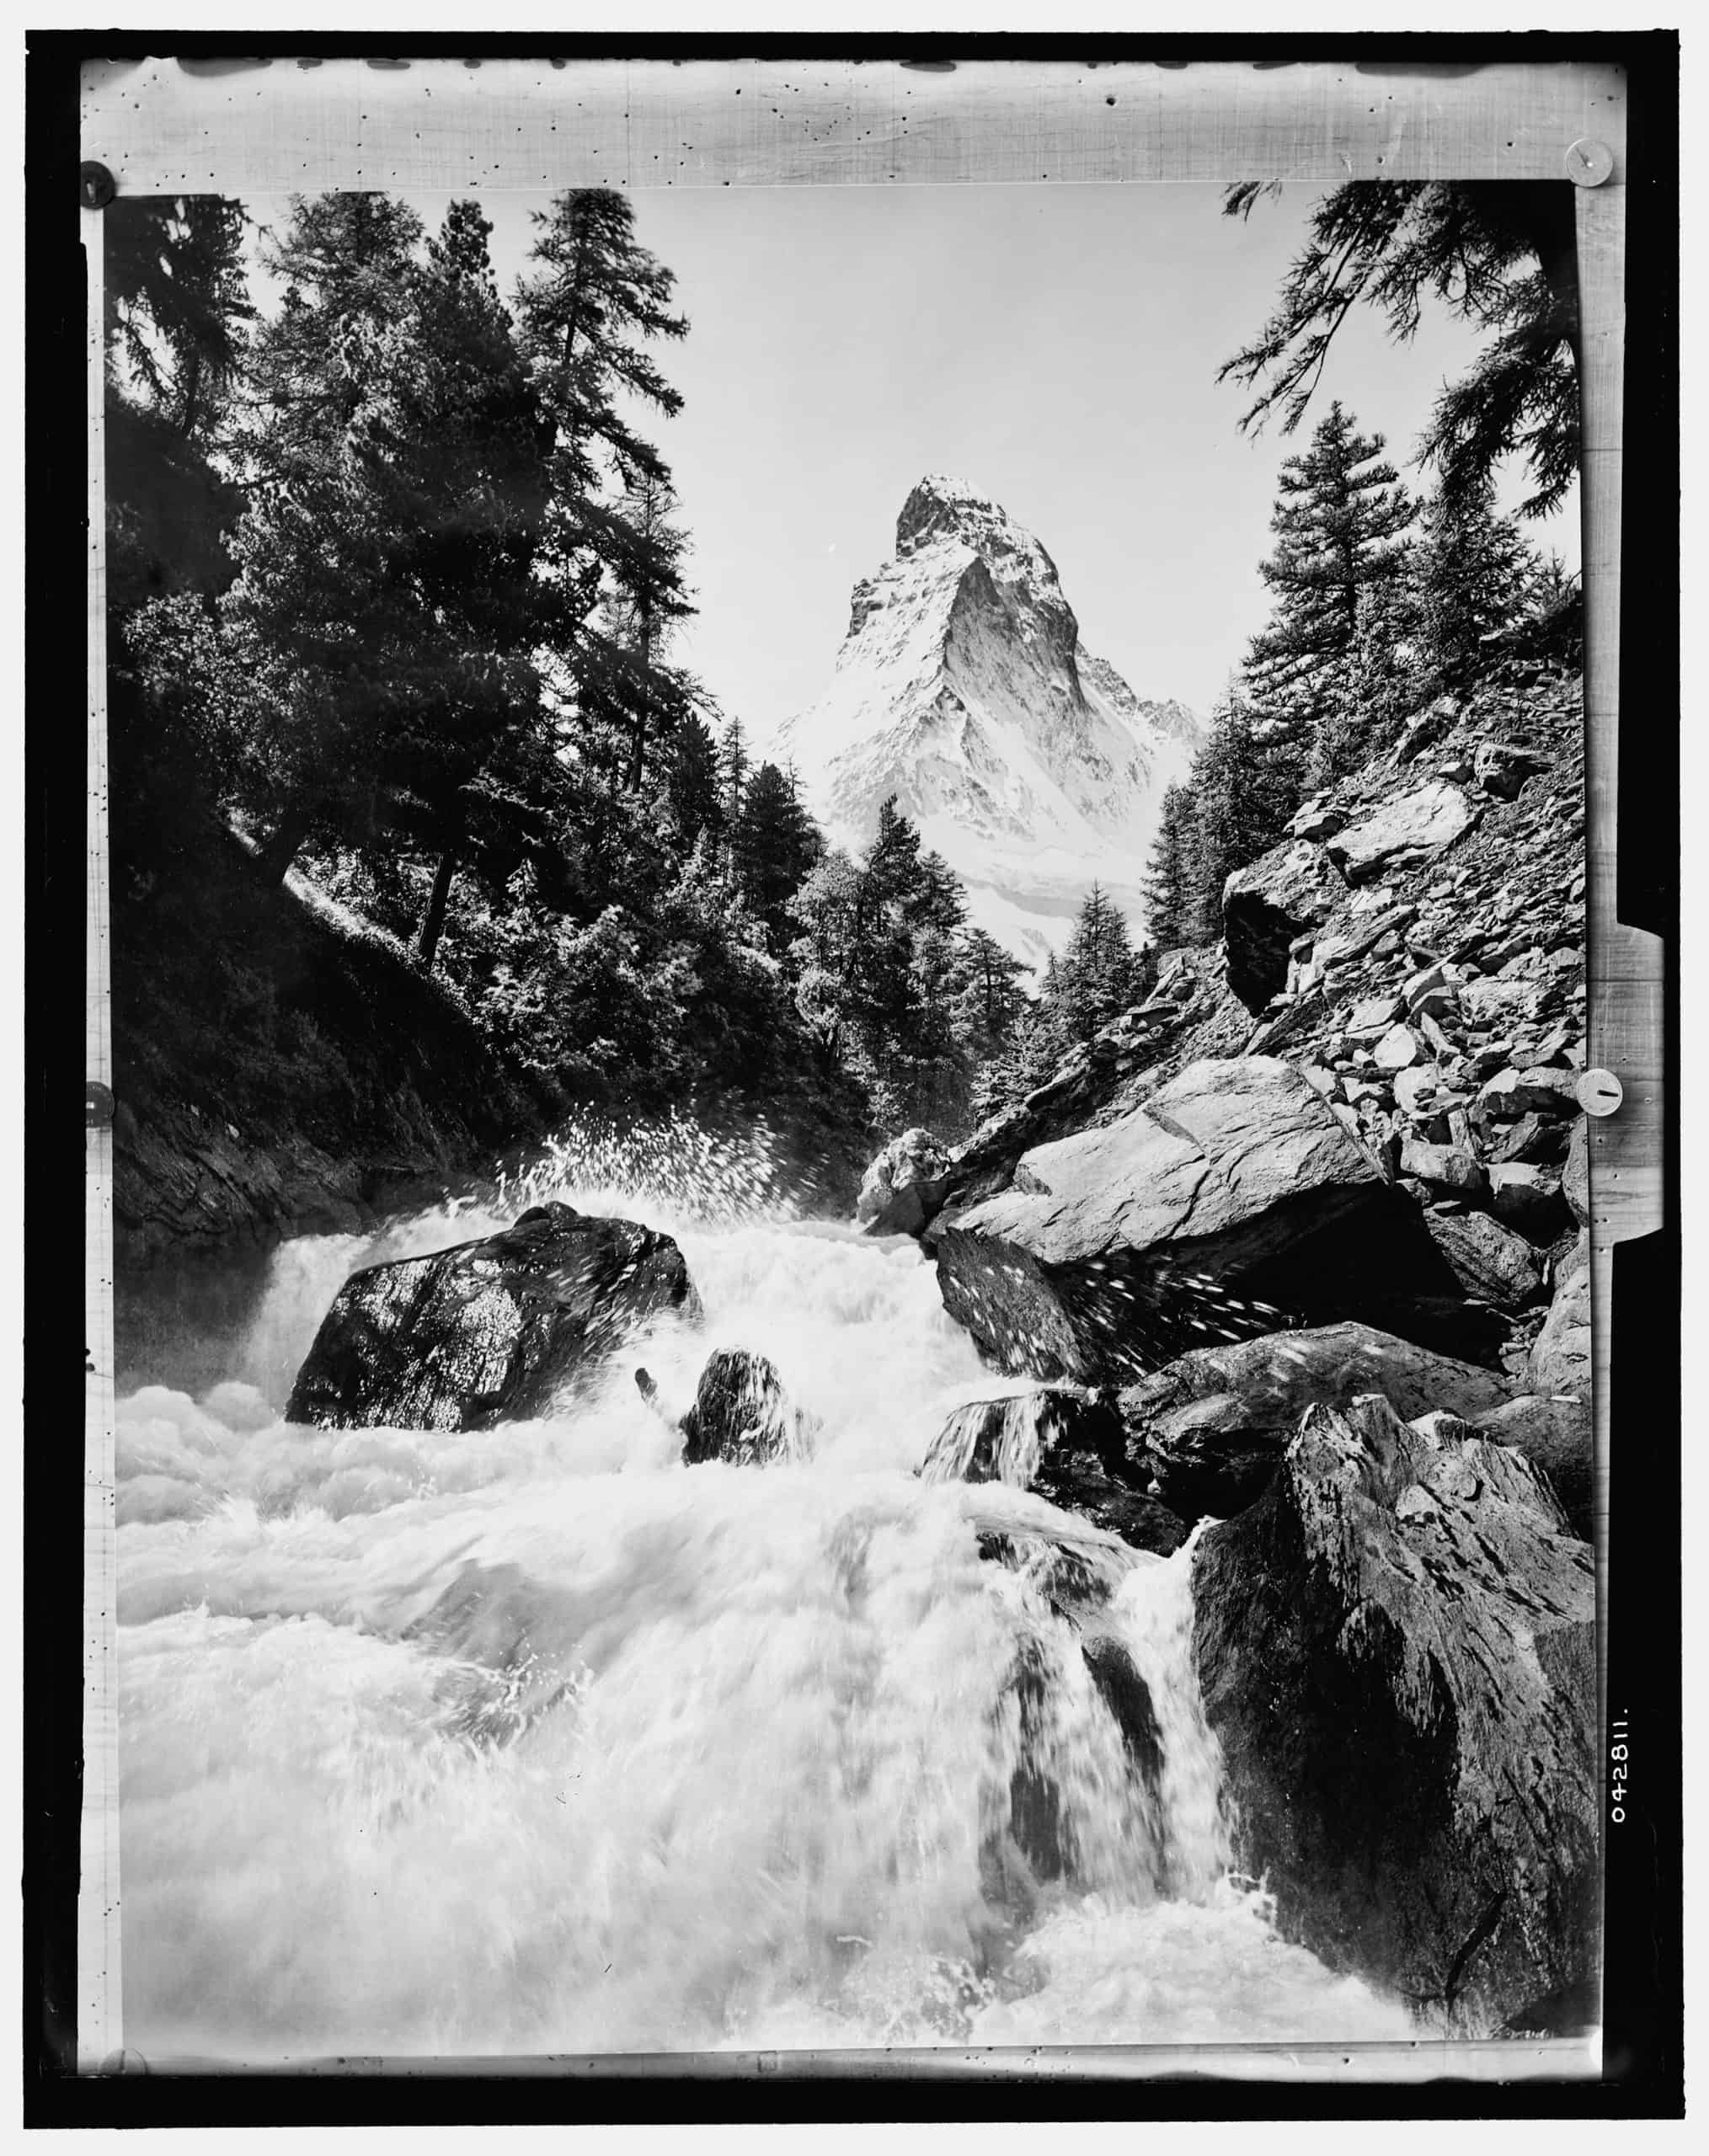 Rushing stream and Matterhorn, Alps. Detroit Publishing Co., between 1900 and 1910